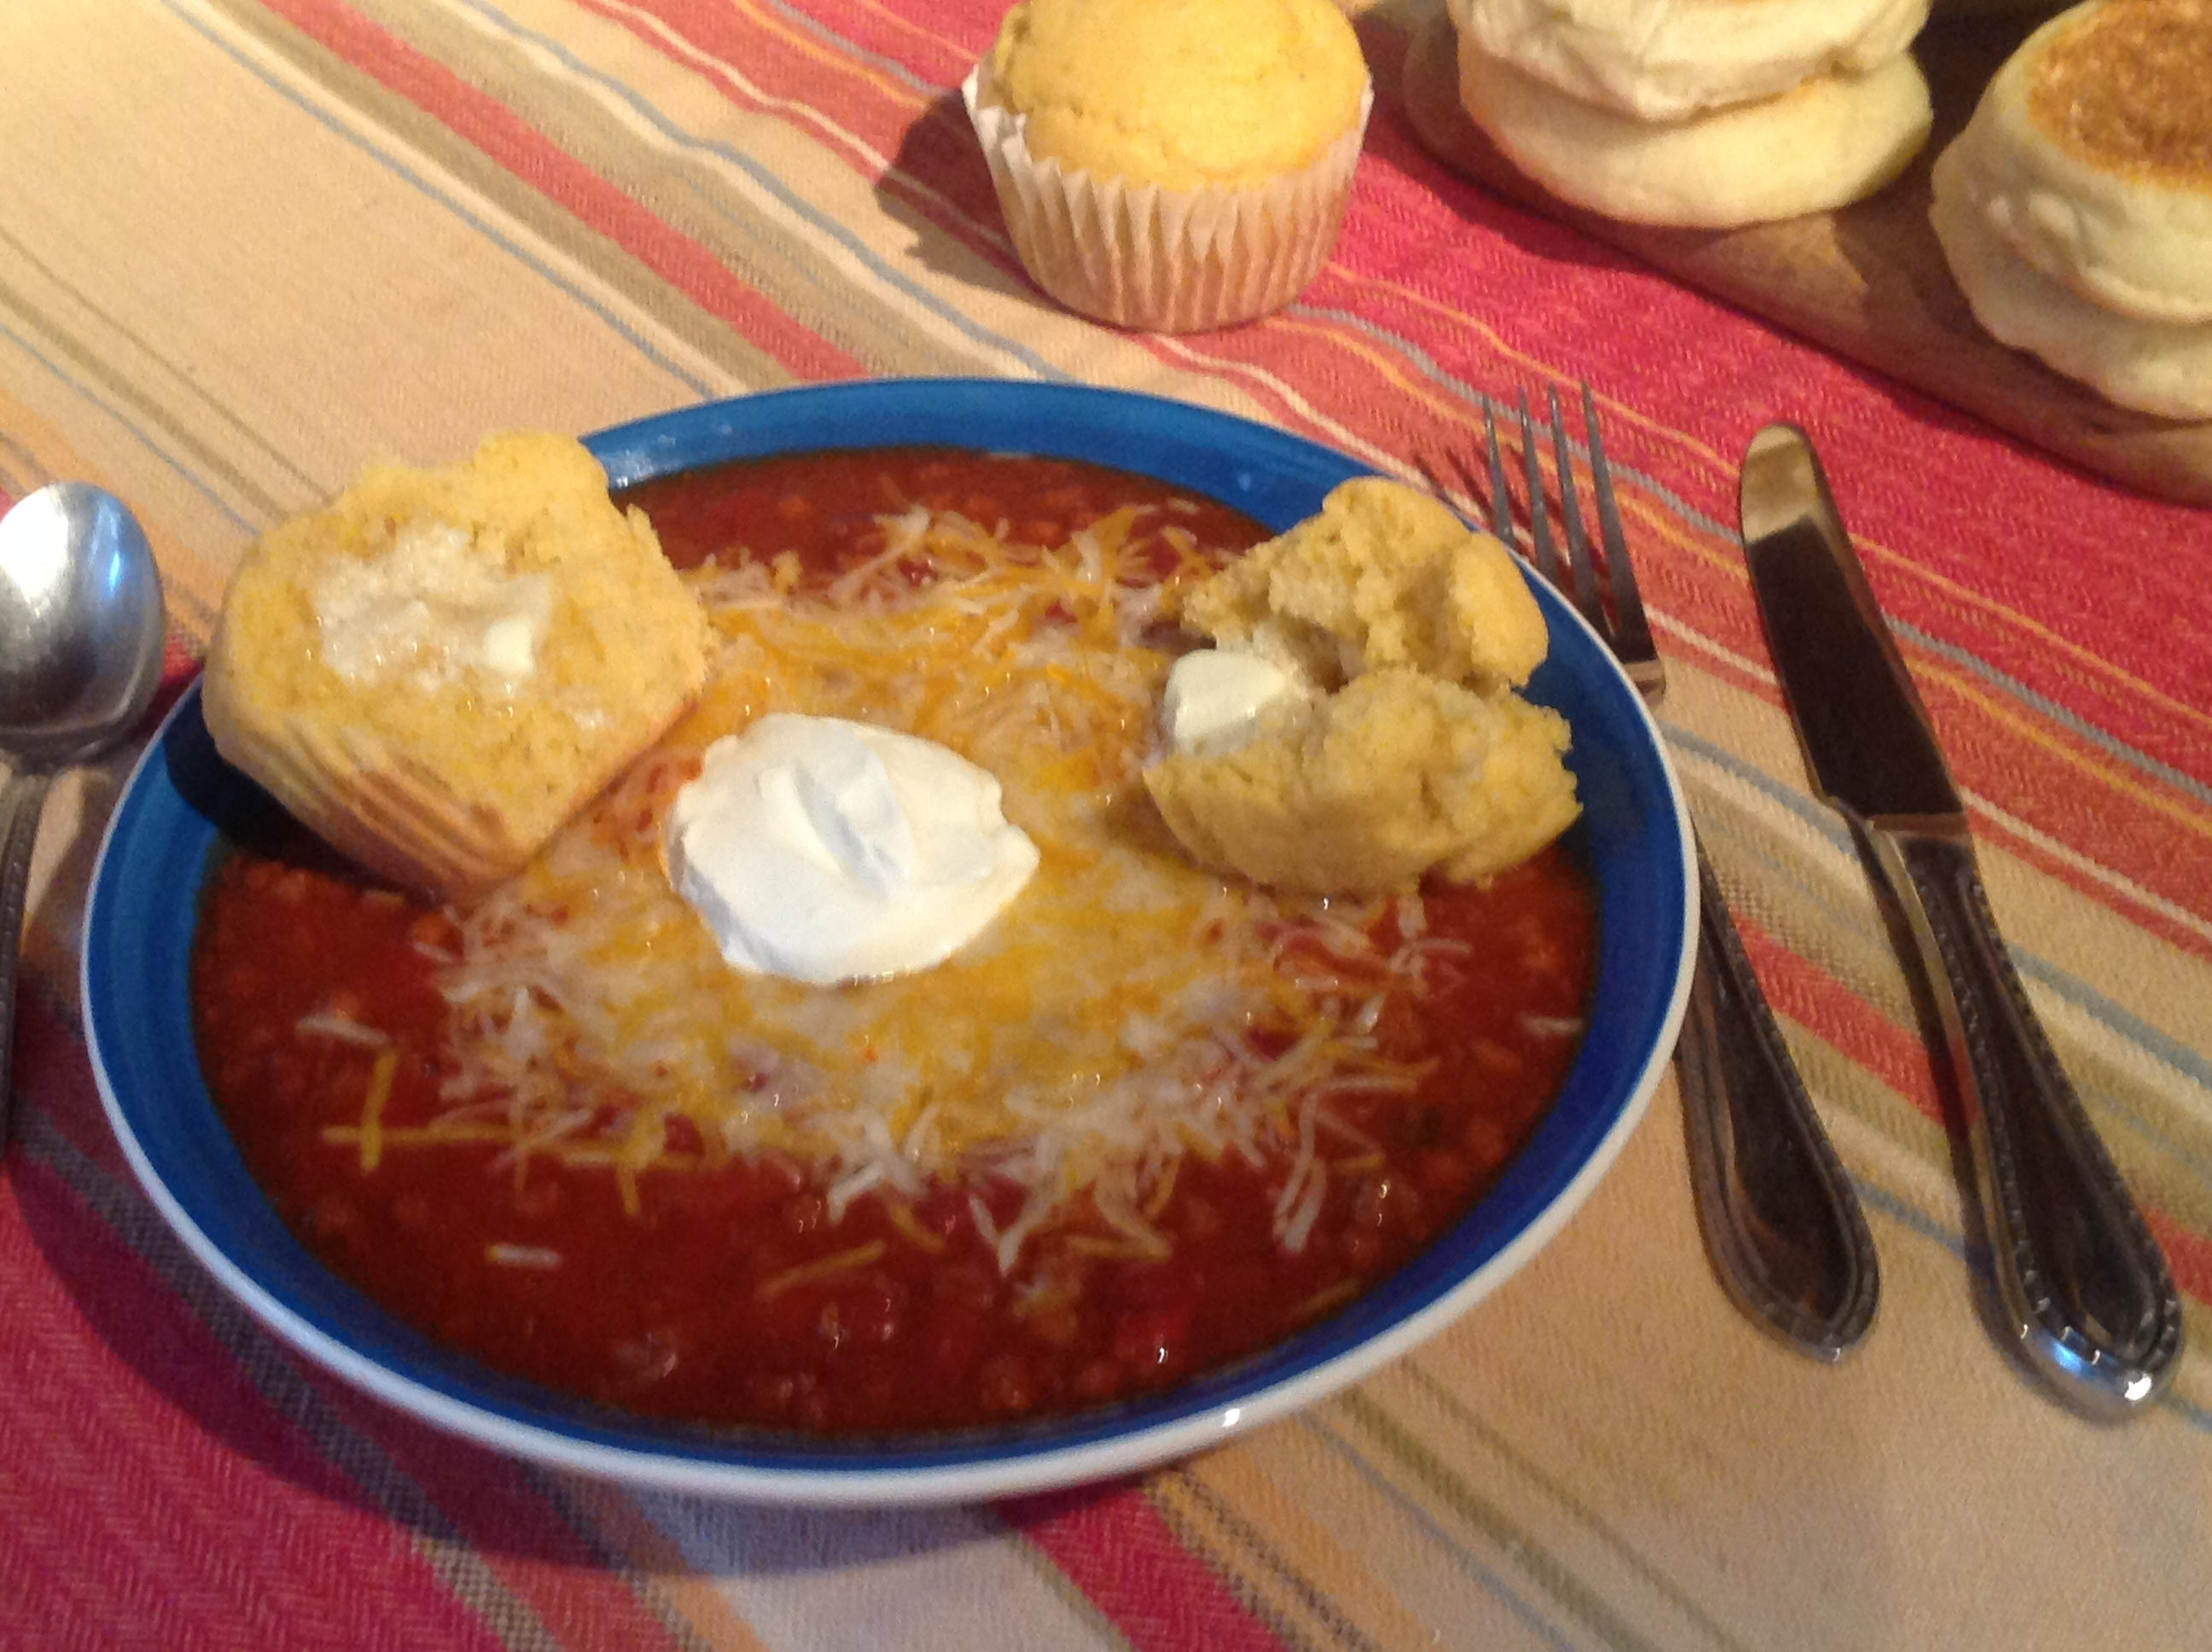 Chili with Corn Muffins and Sour Cream